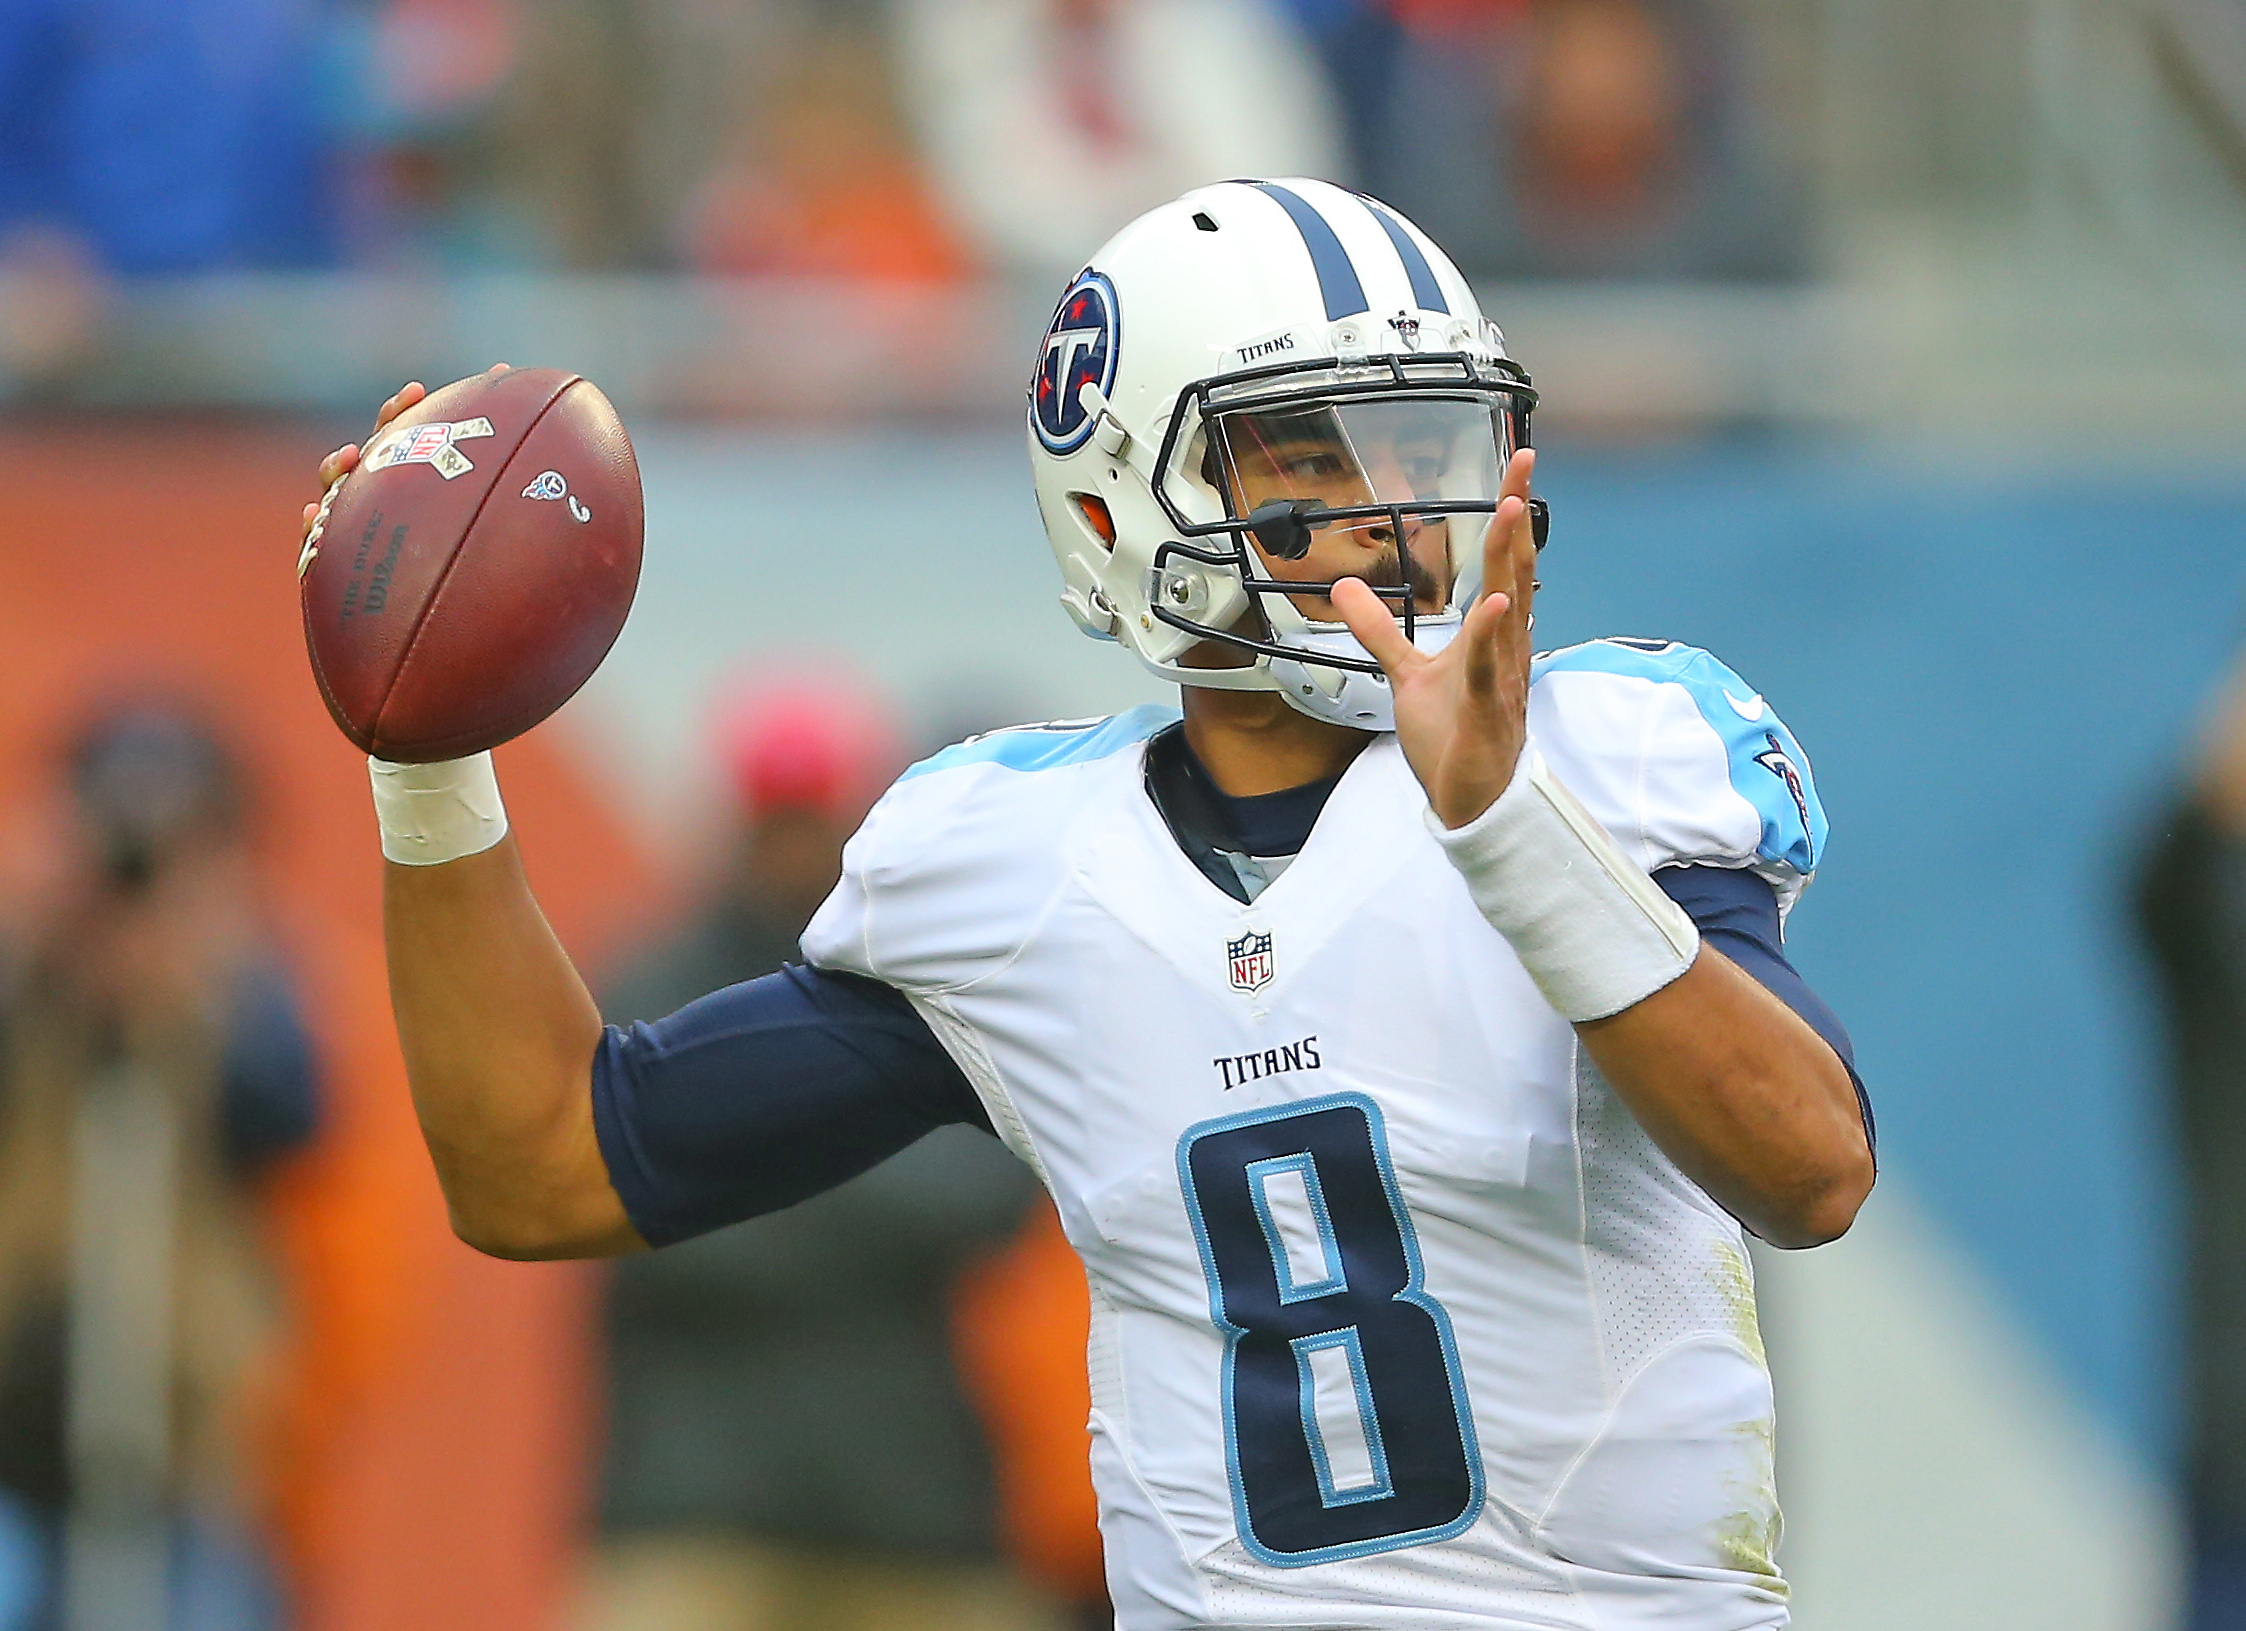 9708910-nfl-tennessee-titans-at-chicago-bears